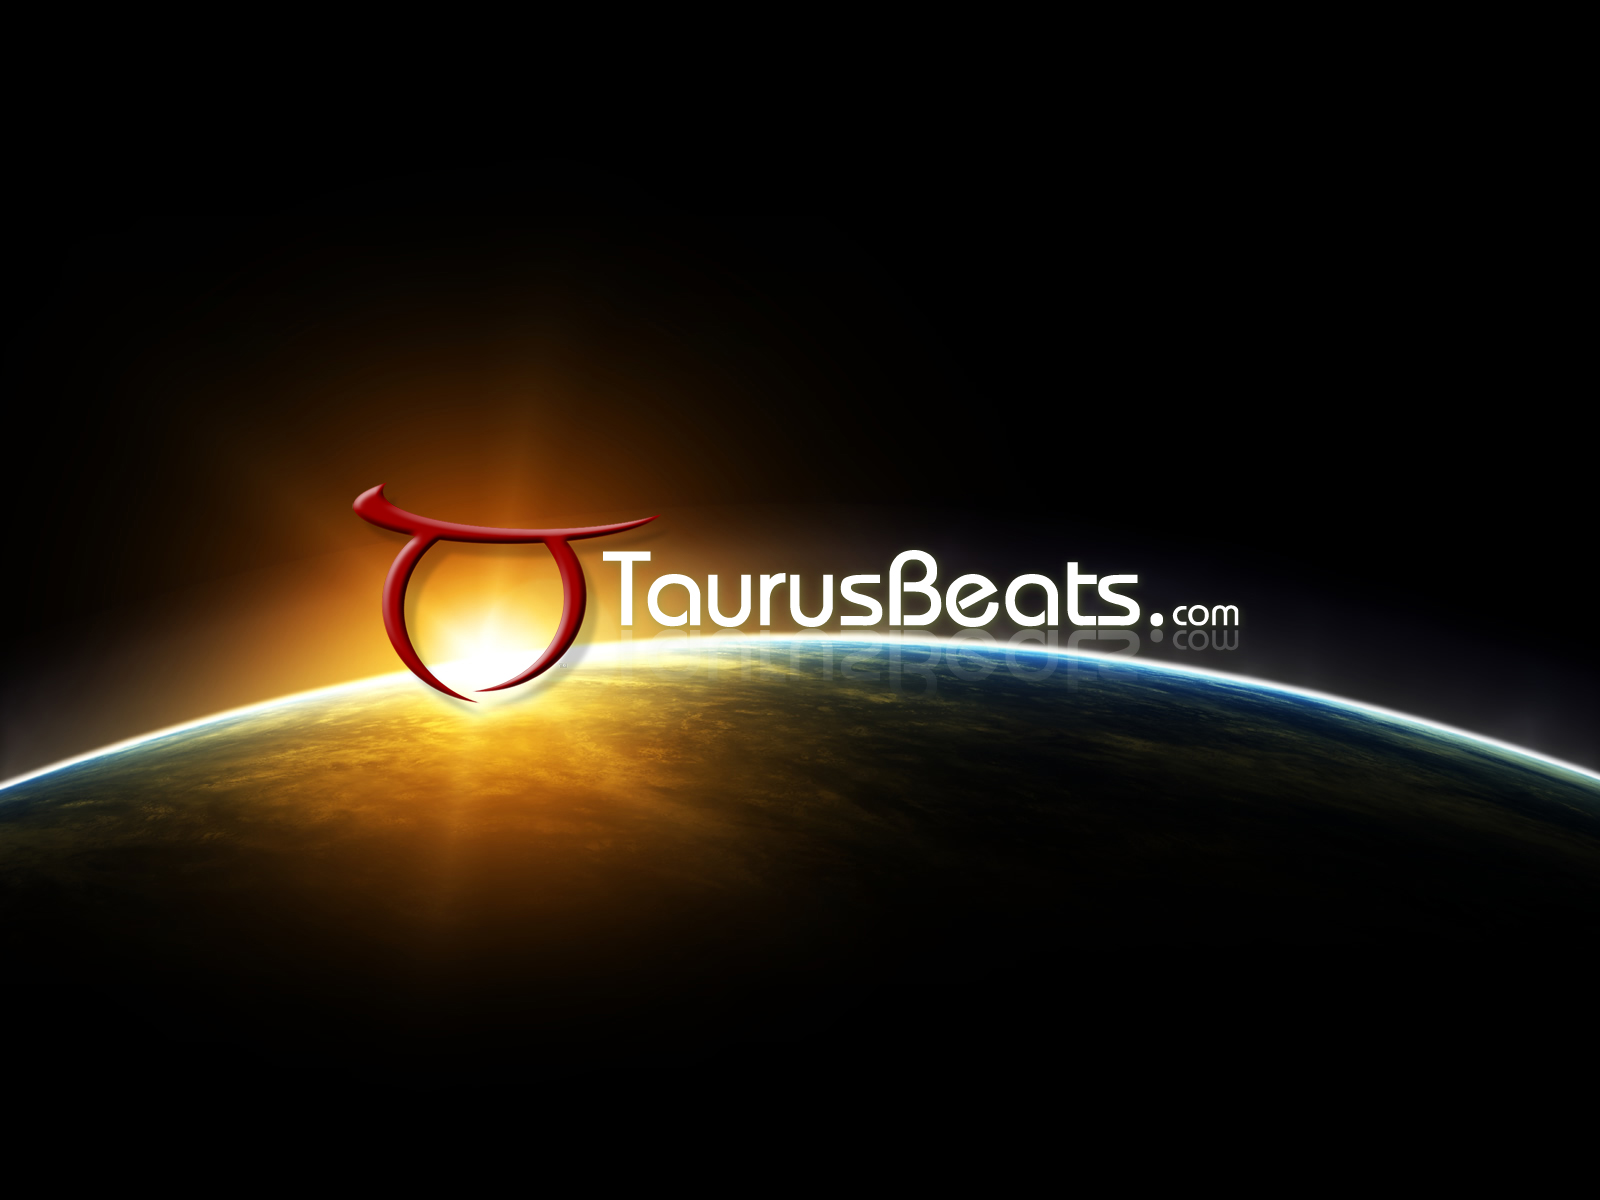 image for TaurusBeats Online Store